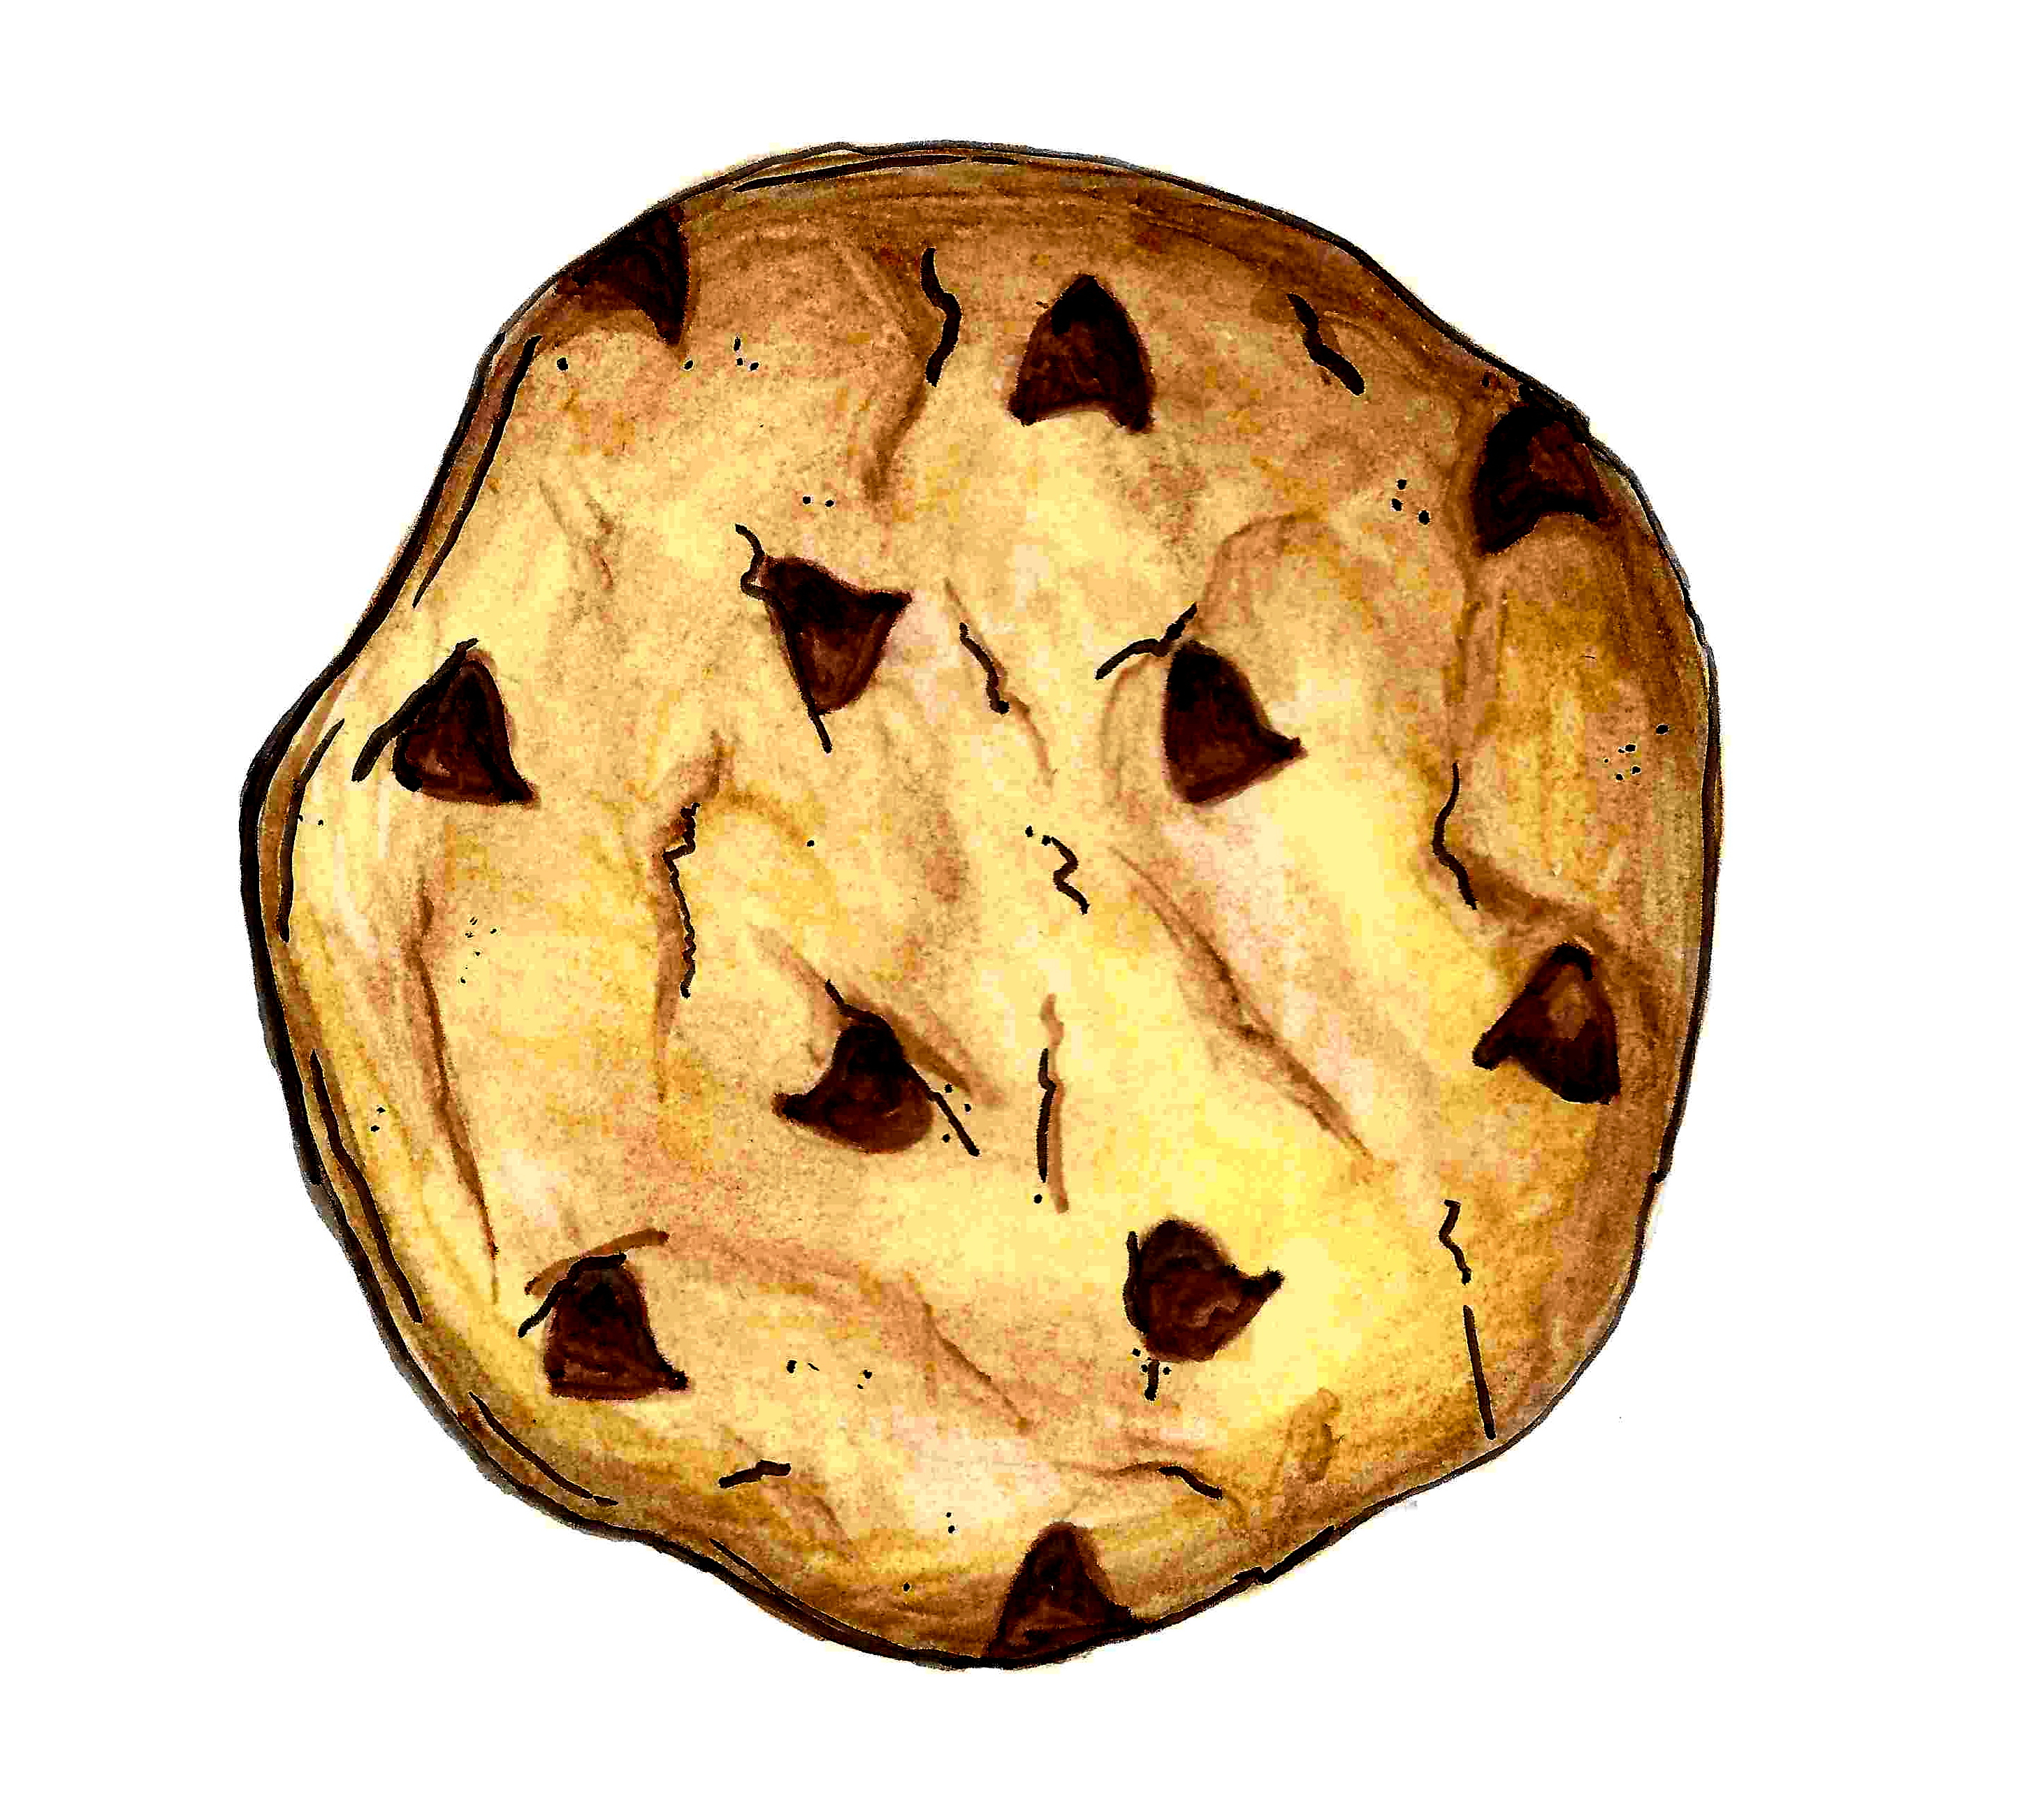 2894x2605 Chocolate Chip Cookie Drawing Food Clipart Chocolate Chip Cookie